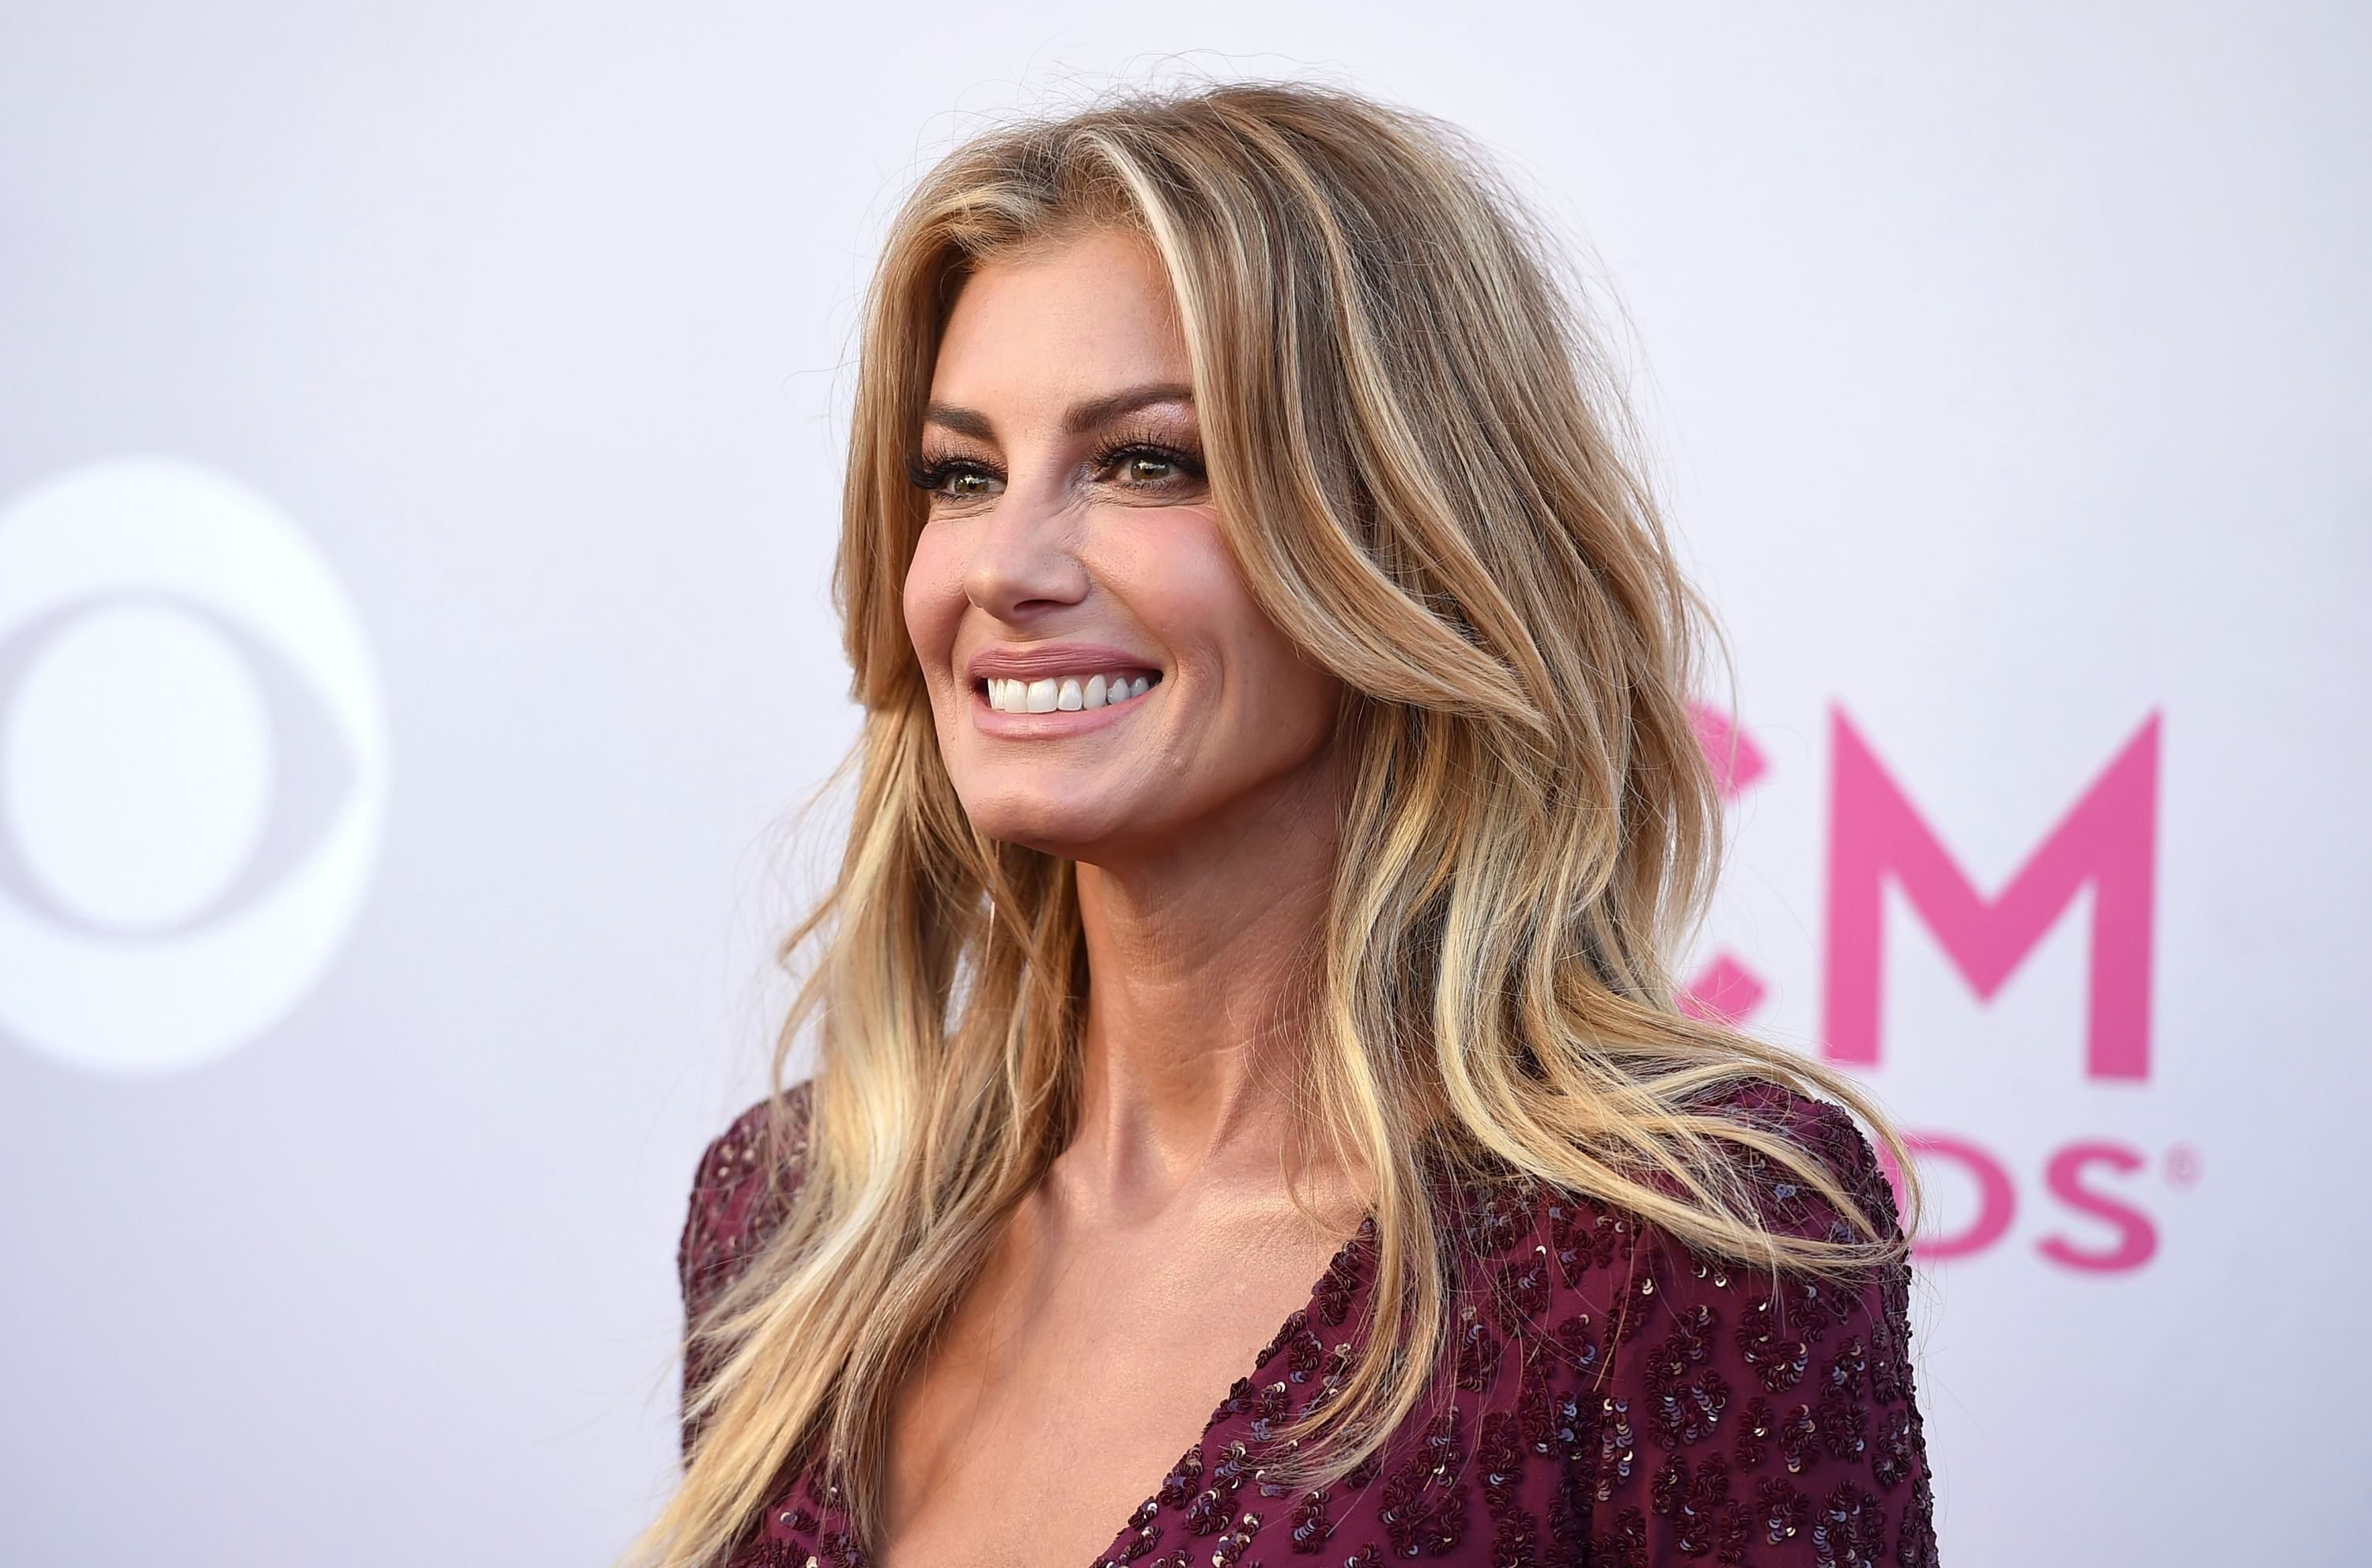 Mandatory Credit: Photo by Invision/AP/Shutterstock (9241571sg) Faith Hill arrives at the 52nd annual Academy of Country Music Awards at the T-Mobile Arena, in Las Vegas 52nd Annual Academy Of Country Music Awards - Arrivals, Las Vegas, USA - 2 Apr 2017